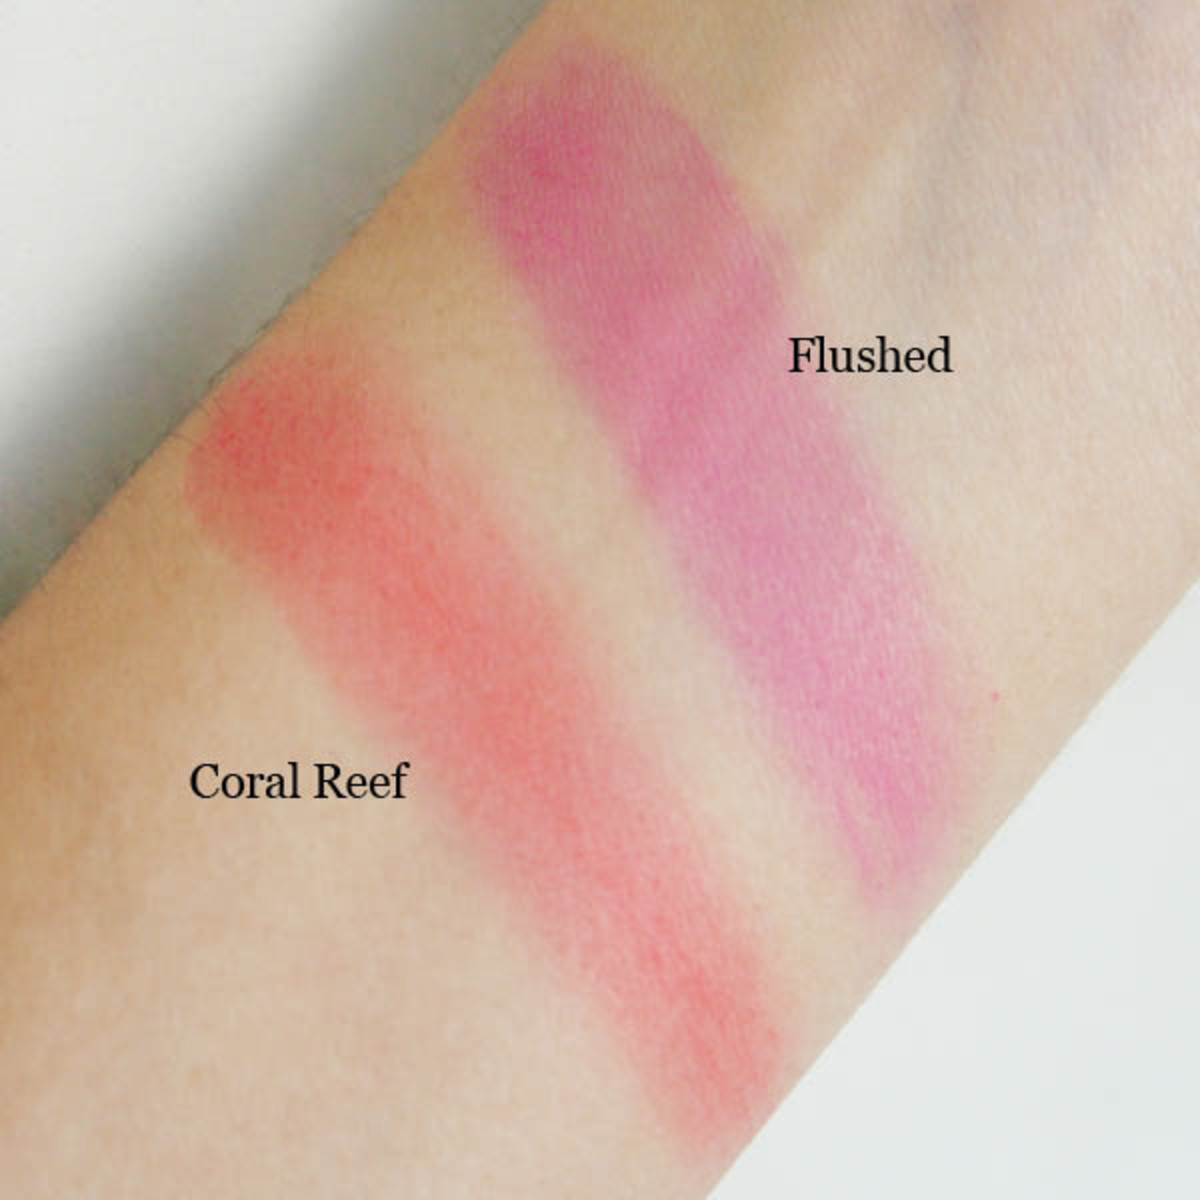 Revlon Cream Blush in Coral Reef and Flushed swatches